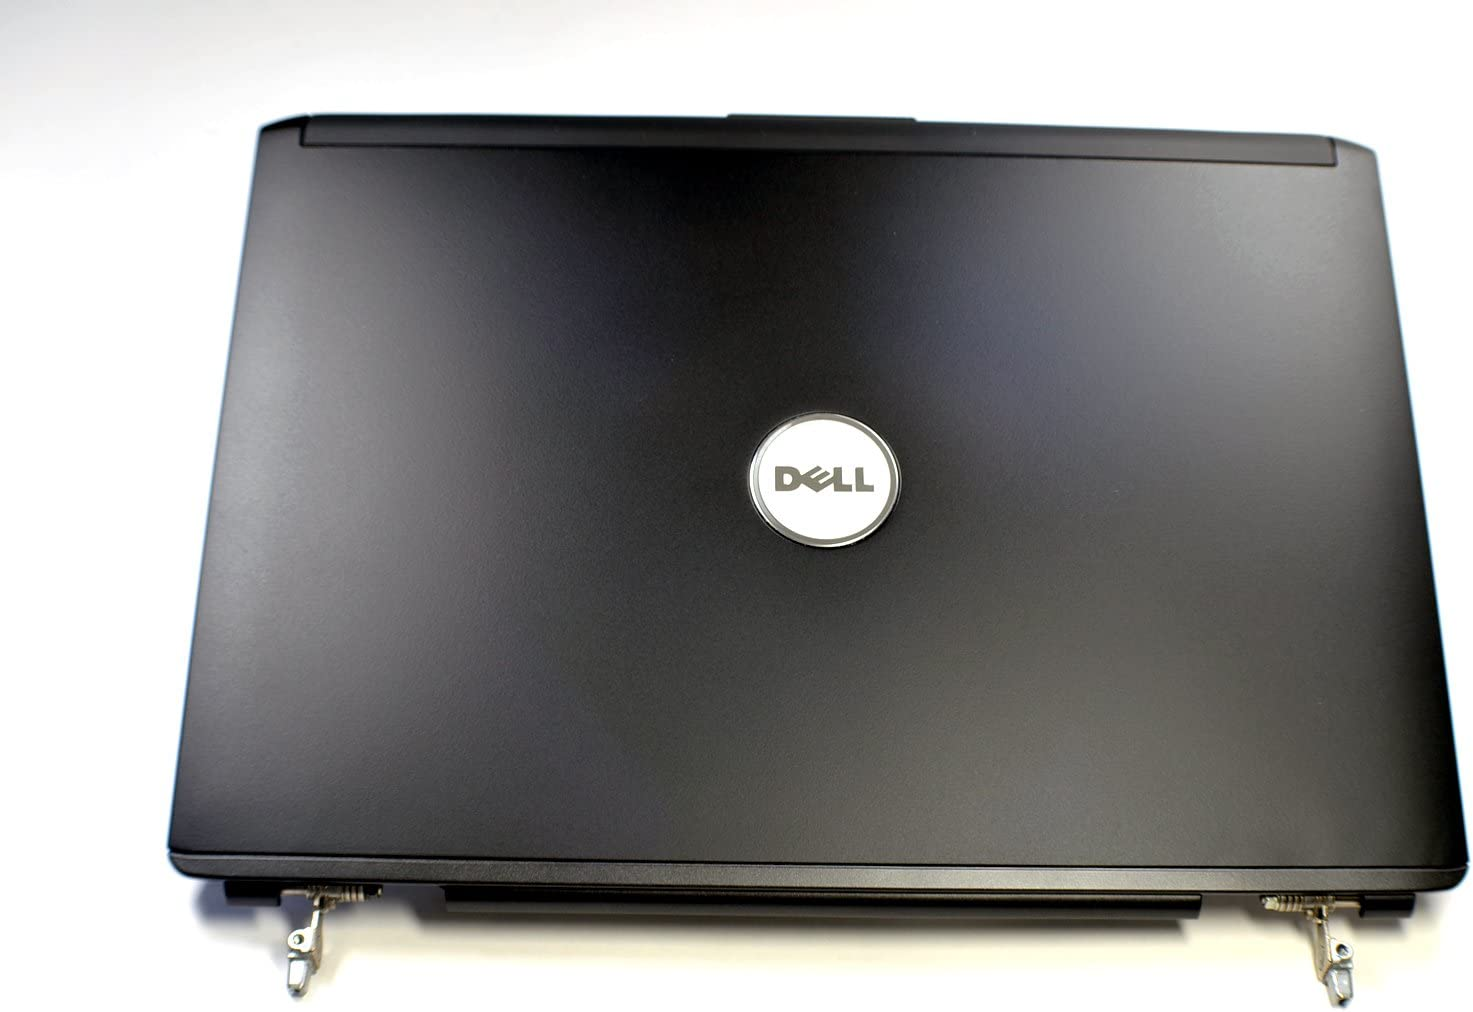 Dell New Genuine OEM Inspiron 1420 1421 Vostro 1400 Laptop Notebook 14.1 Inch Jet Black LCD Rear Back Cover 13GNJS1AM010-1DE 20080817 Top Monitor Panel Case Lid W/Hinges/Antenna Wire Assembly WY781